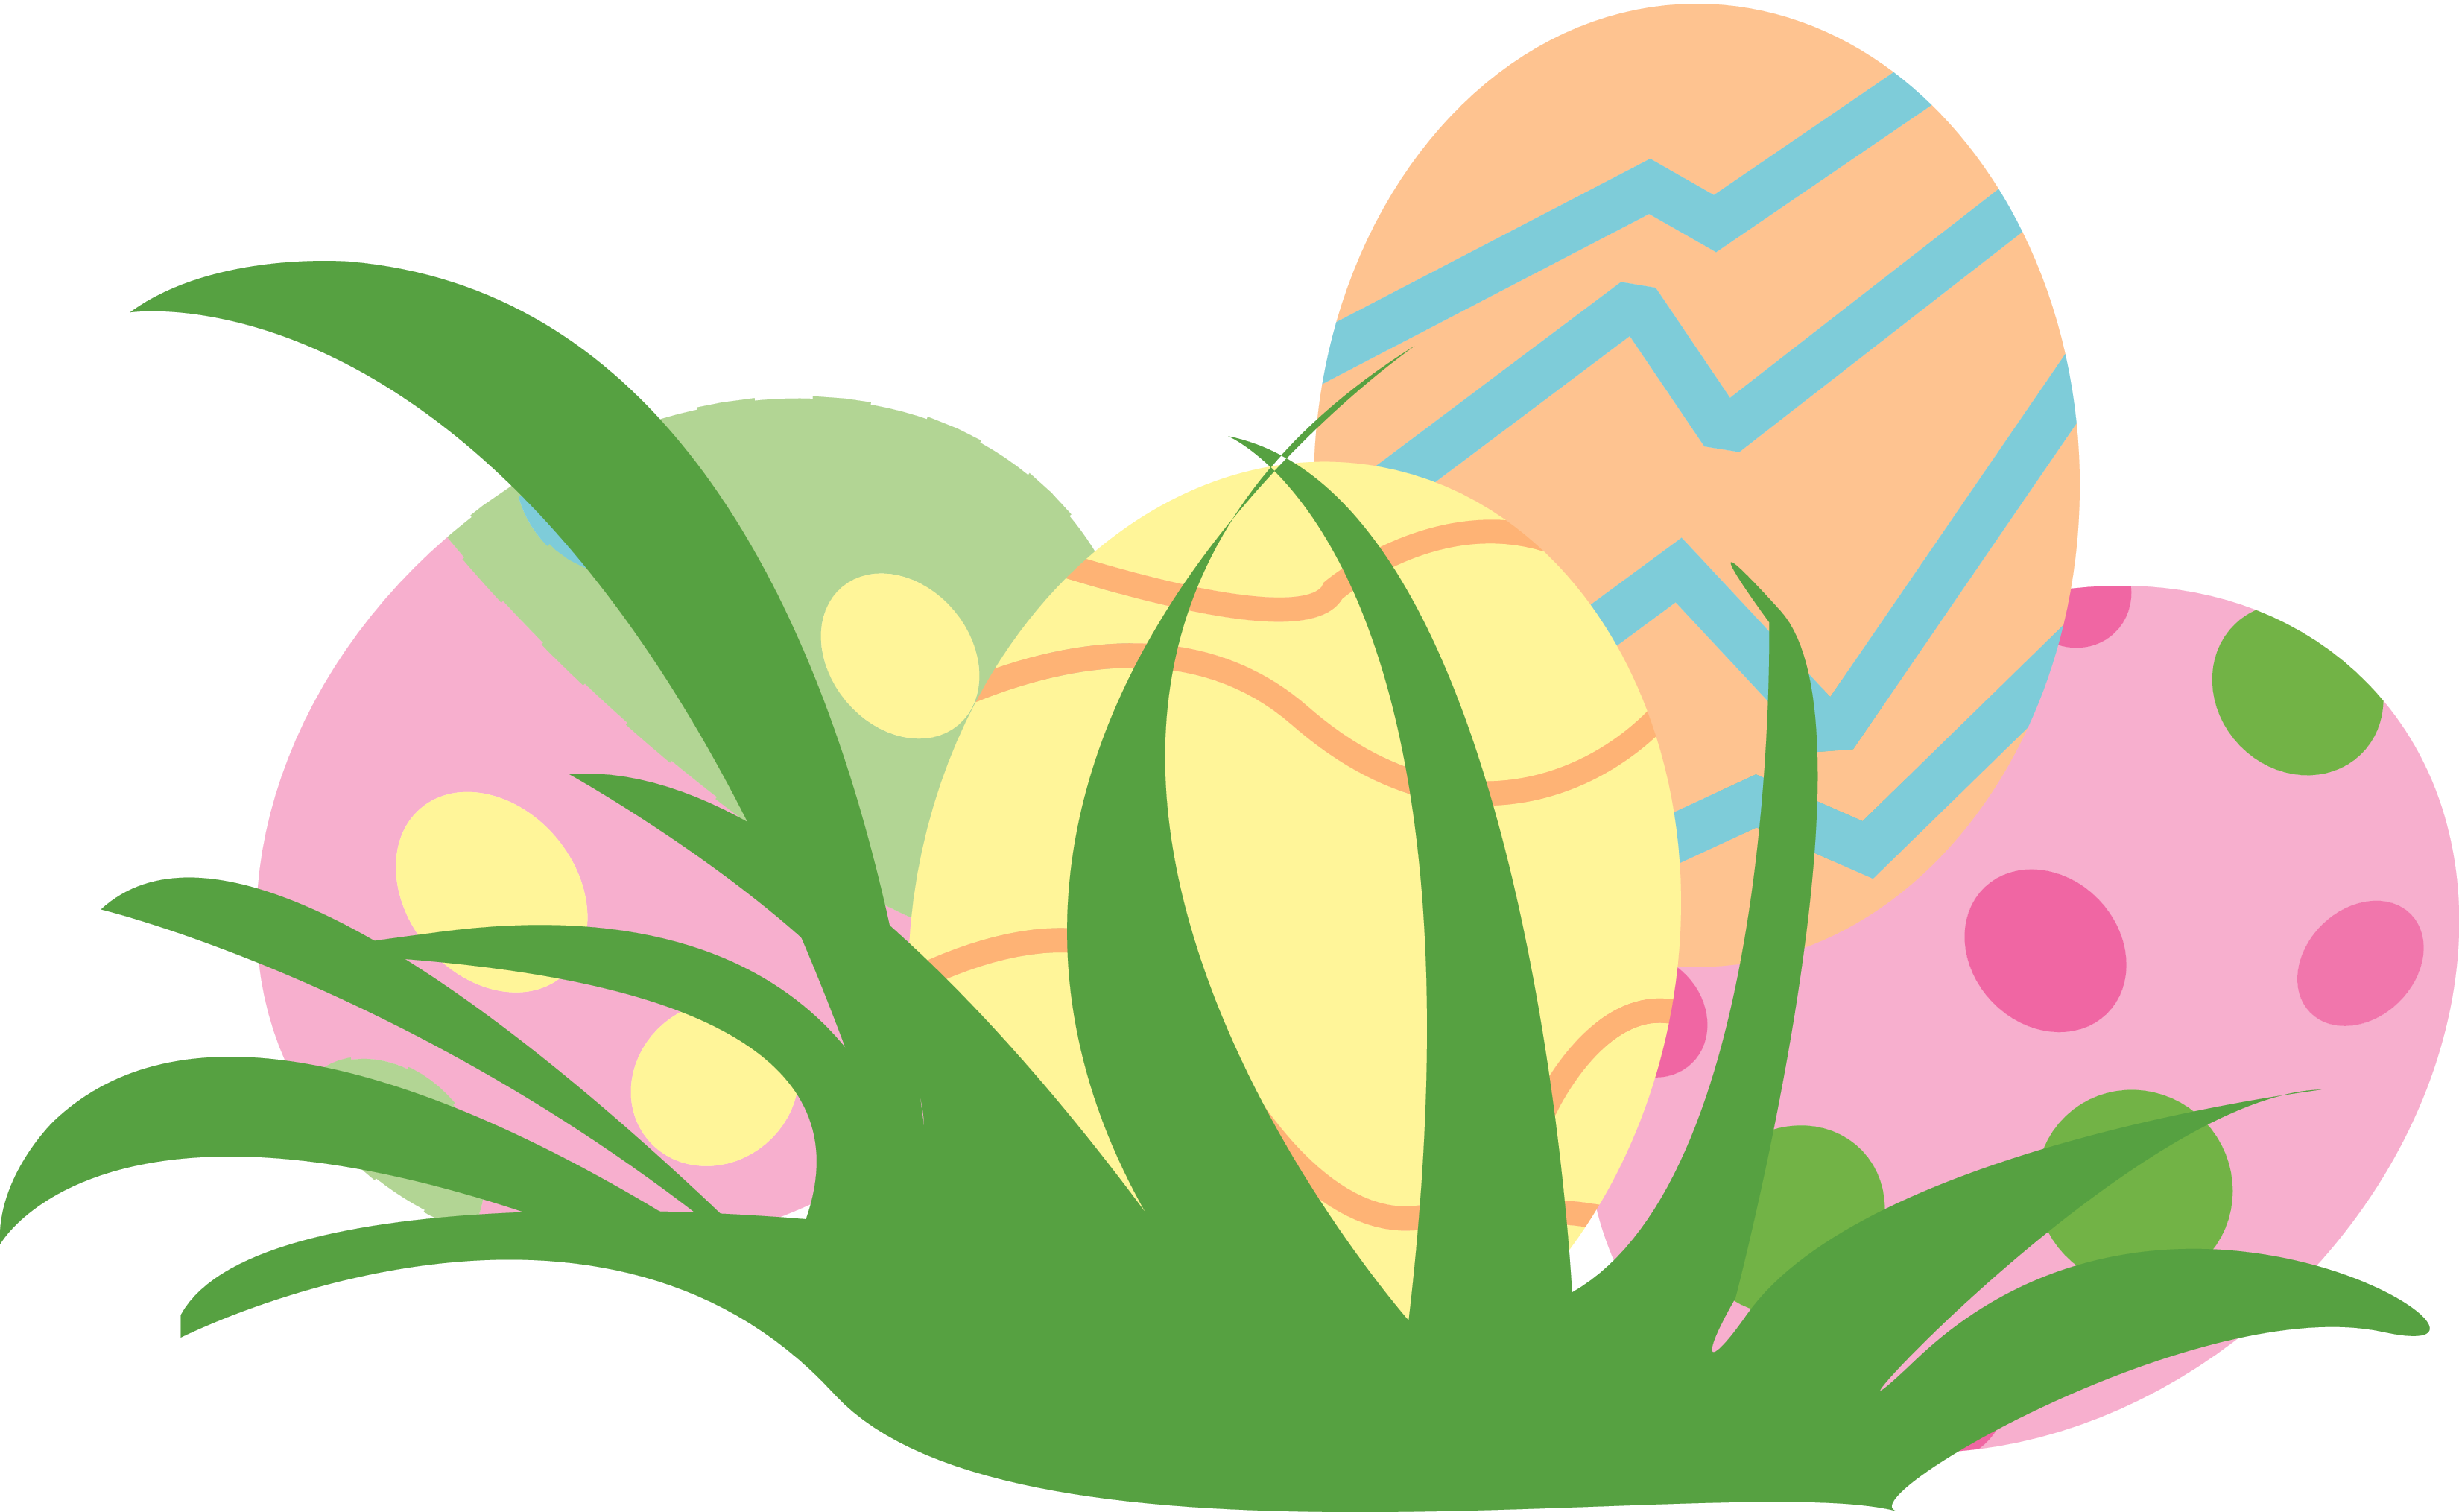 Egg hunt clipart free banner freeuse stock Pin by denise ernst on Easter/Spring | Pinterest | Easter and Cards banner freeuse stock